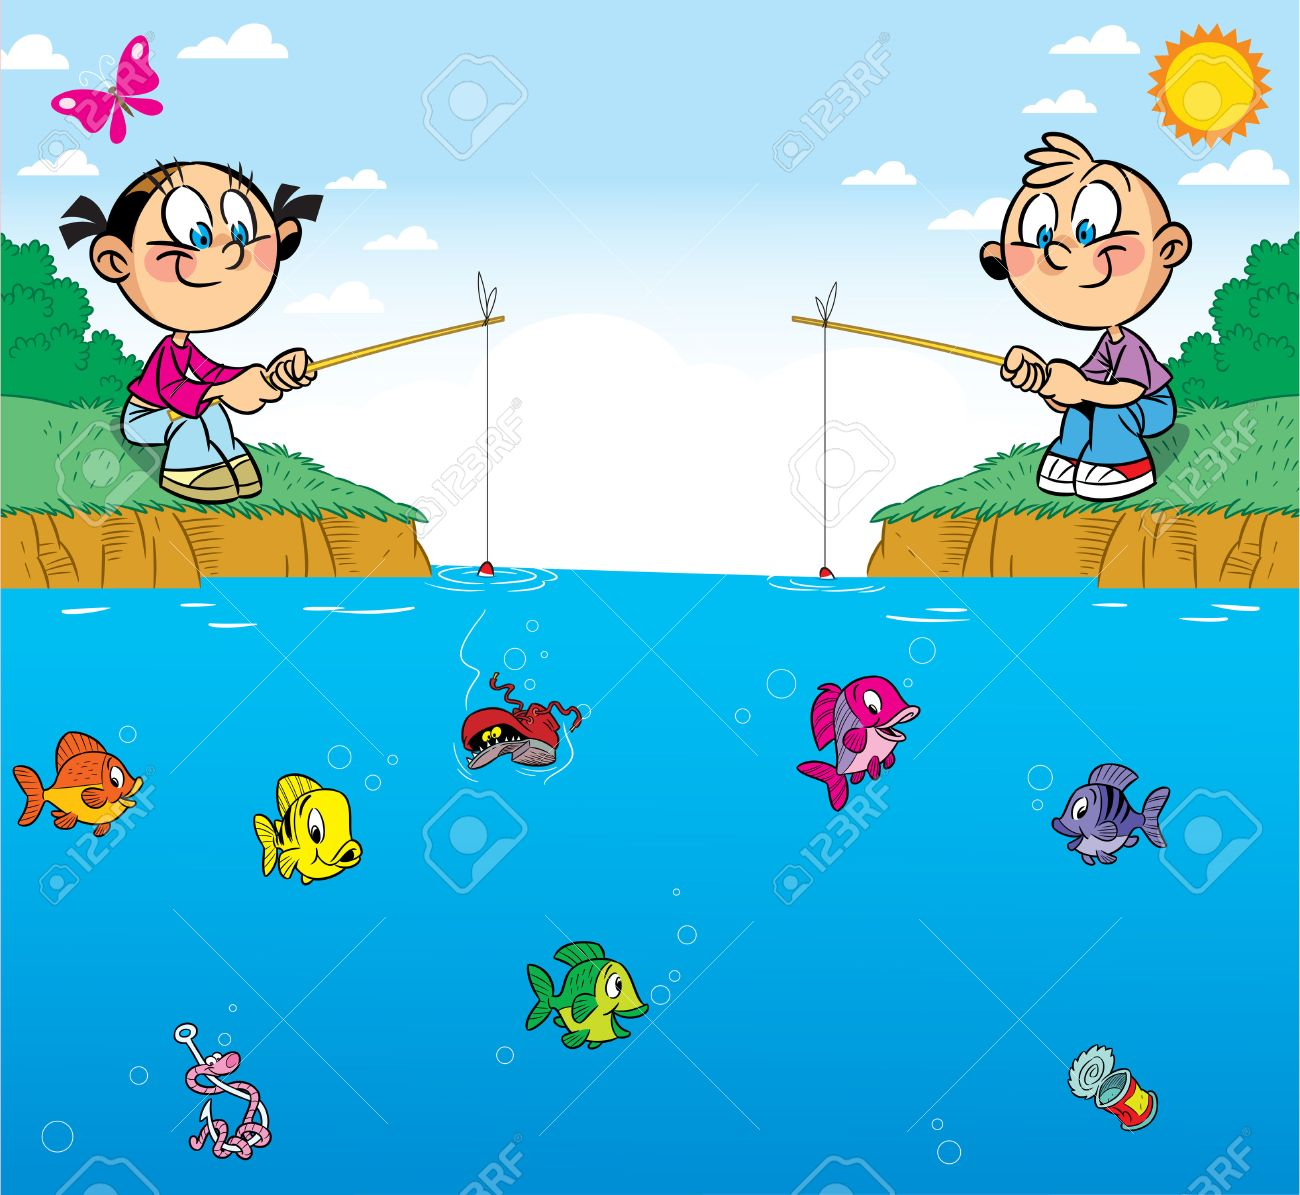 the illustration shows a boy and girl on the pond they are the illustration shows a boy and girl on the pond they are passionate about fishing in